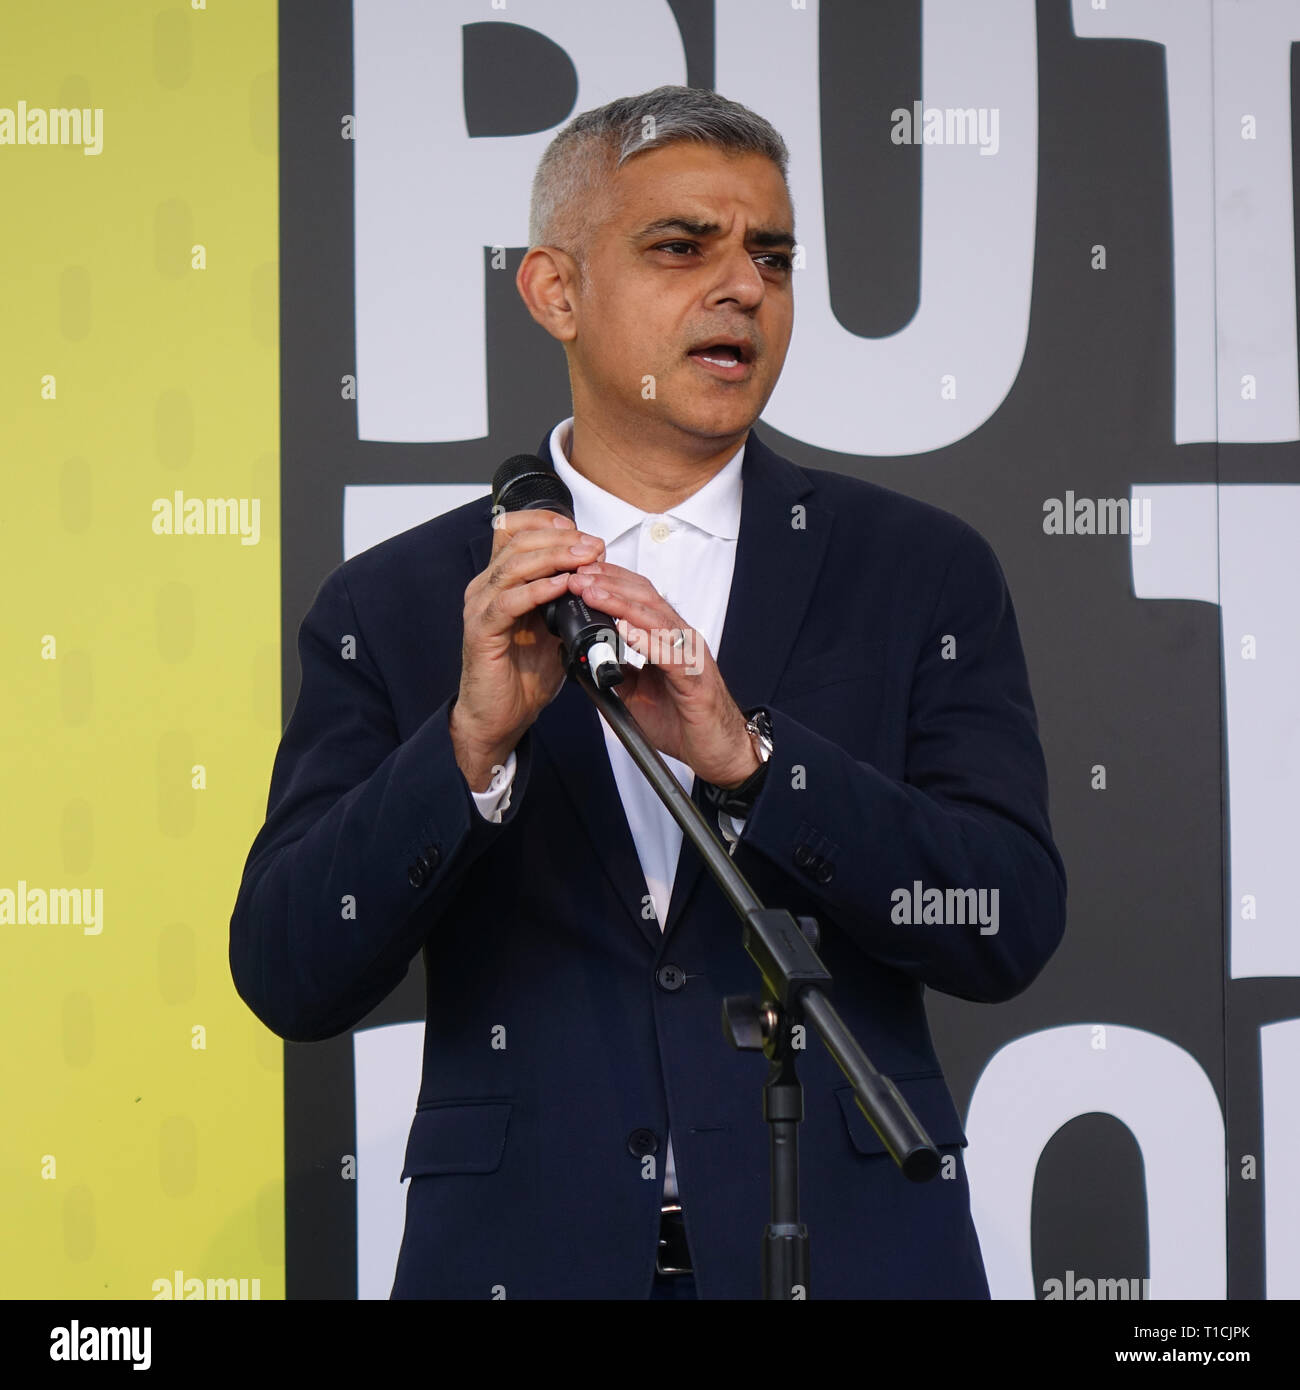 London, UK. 23rd March, 2019. London Mayor Sadiq Khan speaks on 'People's Vote' March in Parliament Square. - Stock Image